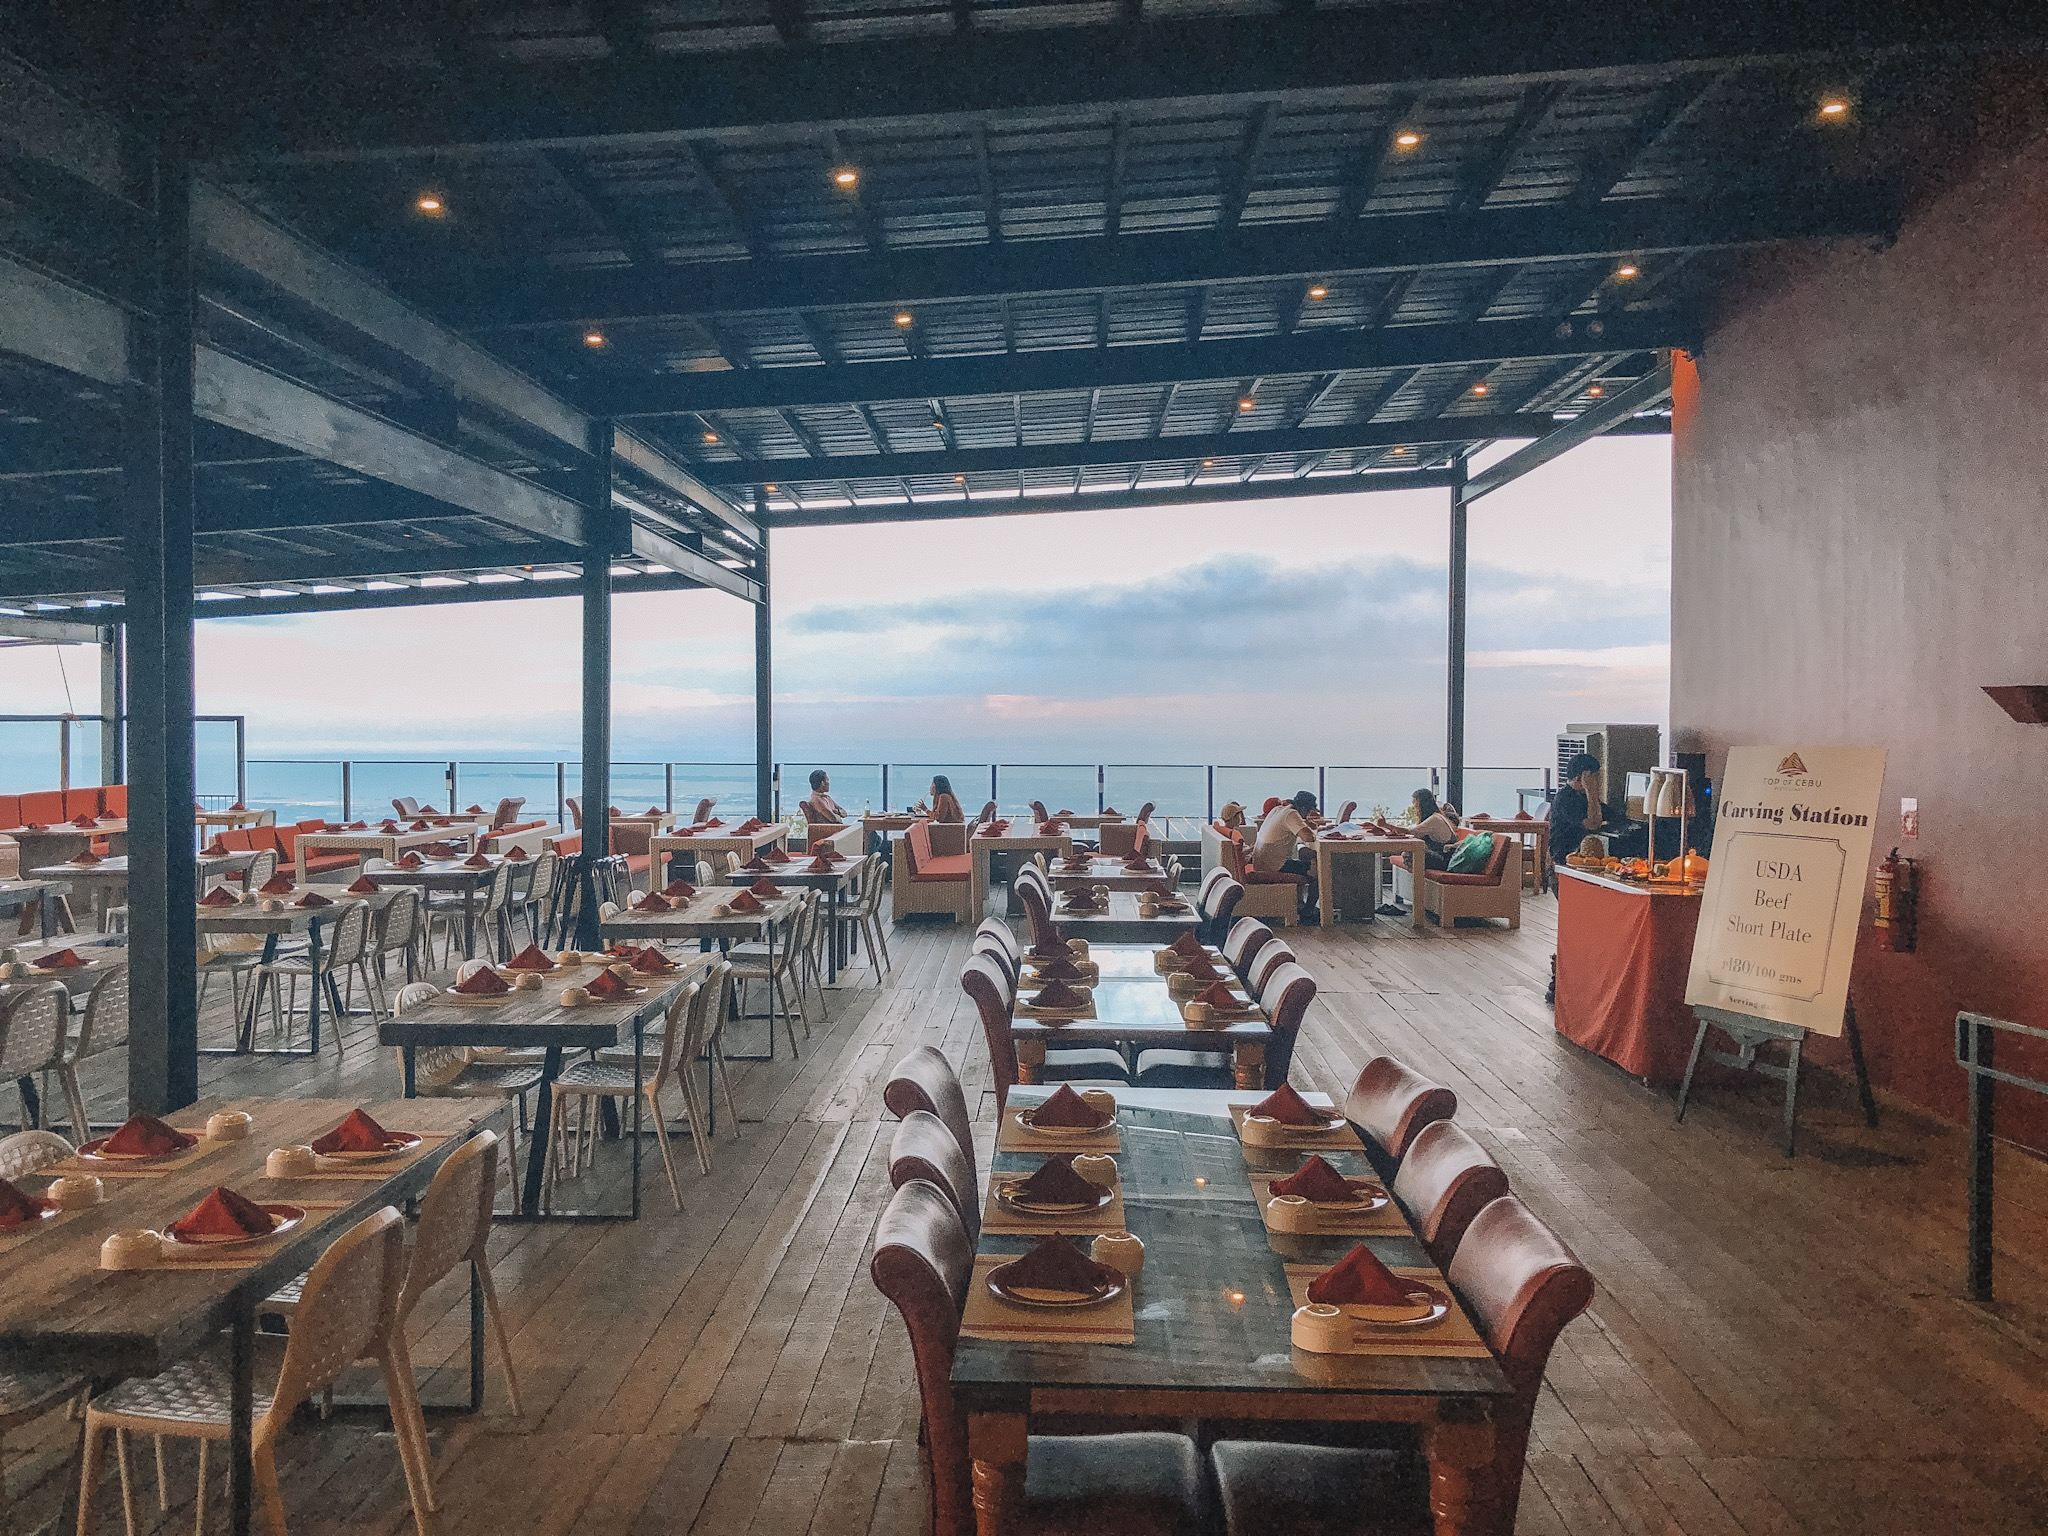 Dinning with a View at Top of Cebu Restaurant | Lami Kaayo!